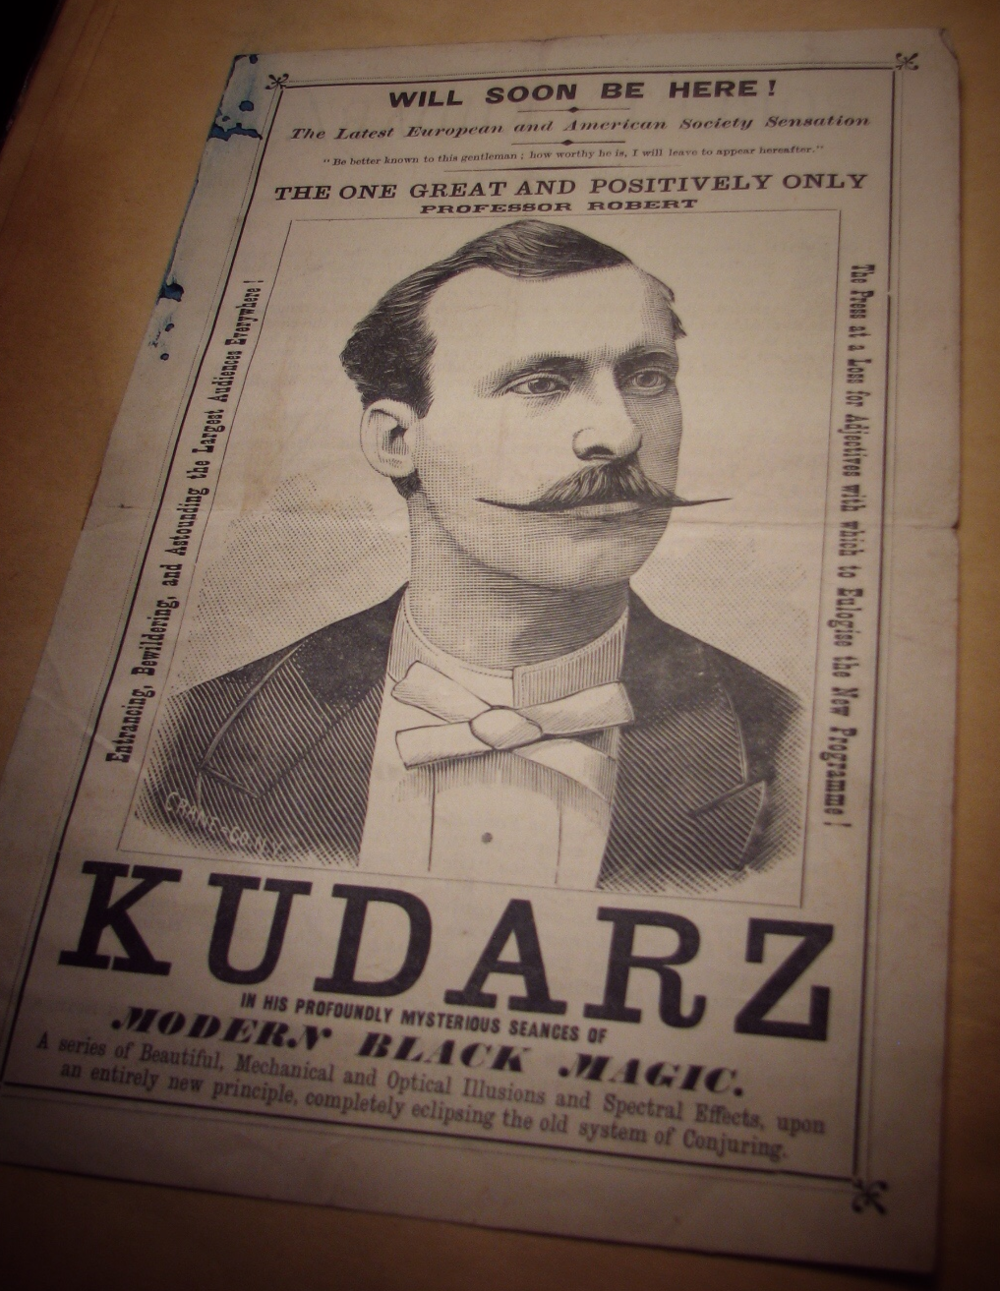 Advertising Flyer for Robert Kudarz.  Permalink:  http://lccn.loc.gov/2011656323      Burlingame, Hardin J.  Foreign magicians, [1870-1901]  Library of Congress Rare Book/Special Collections Reading Room (Jefferson LJ239) - Houdini Scrapbook 4